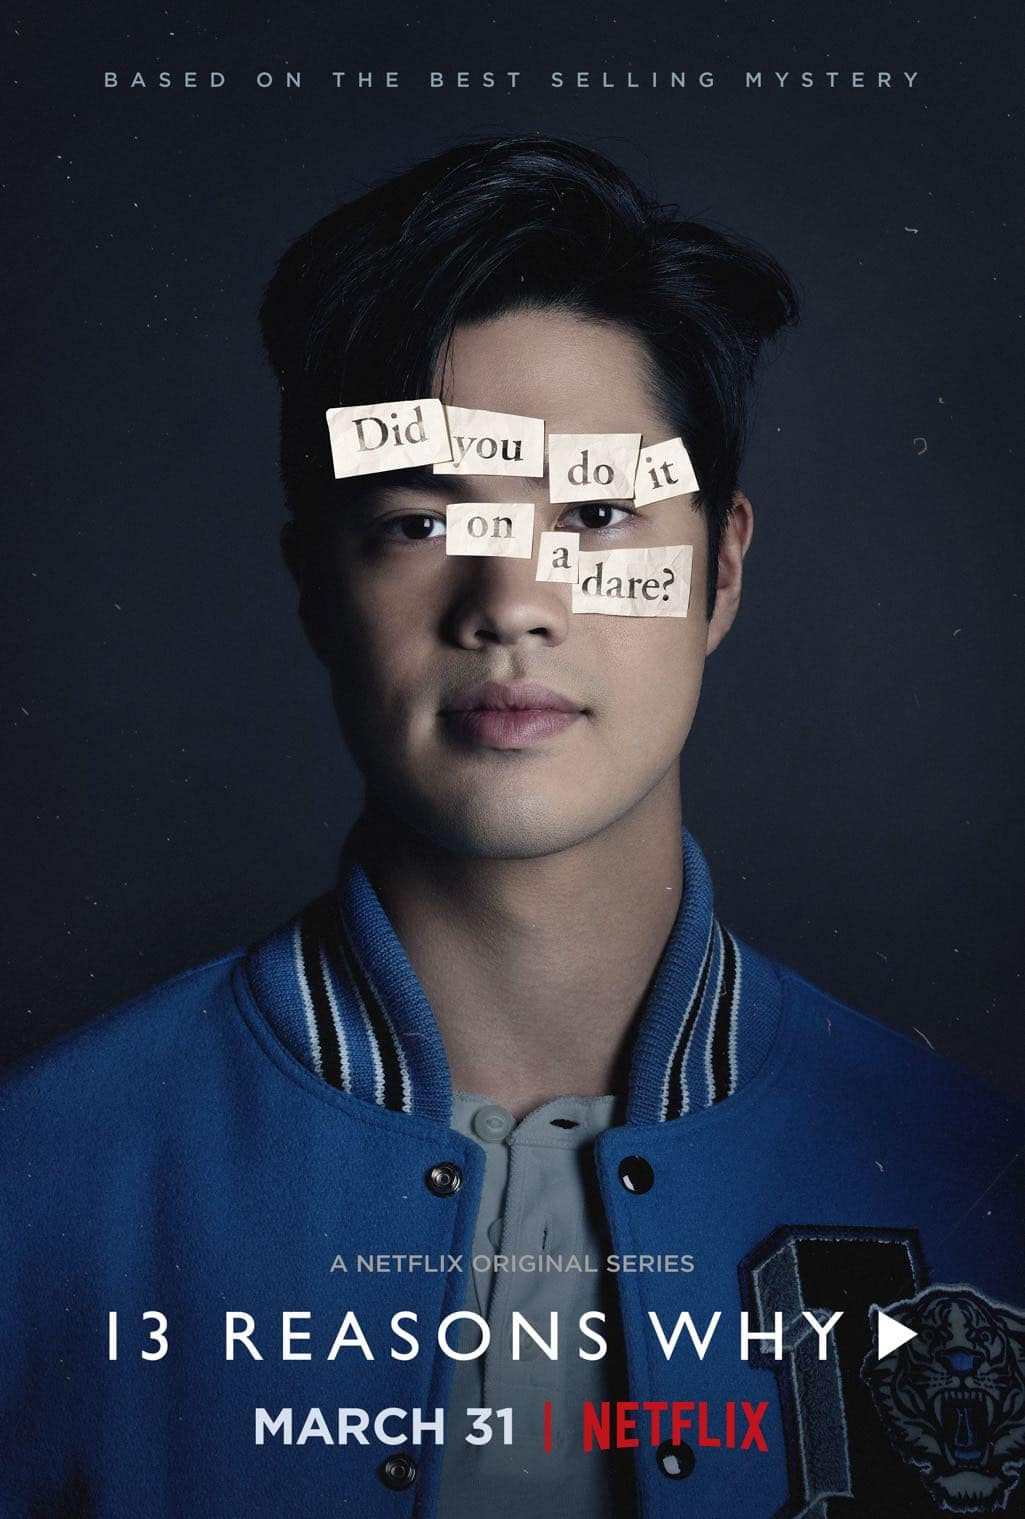 13 Reasons Why Character Poster Ross Butler as Zach